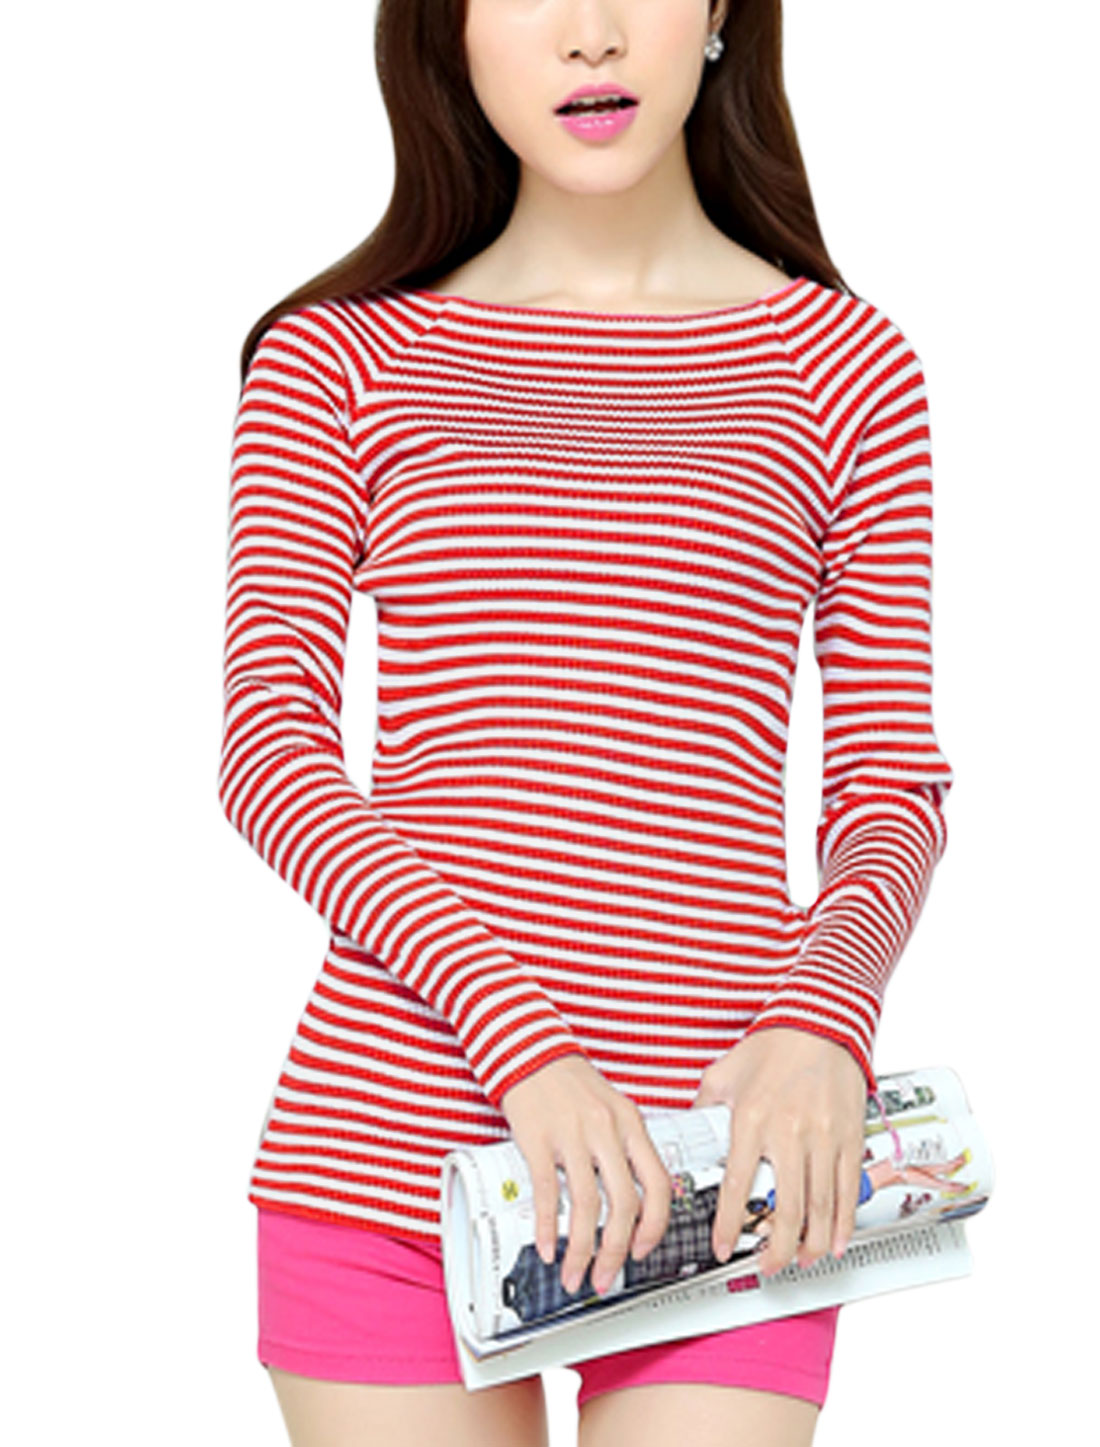 Red White Stripes Long Sleeve Stylish Knit Shirt for Women XS